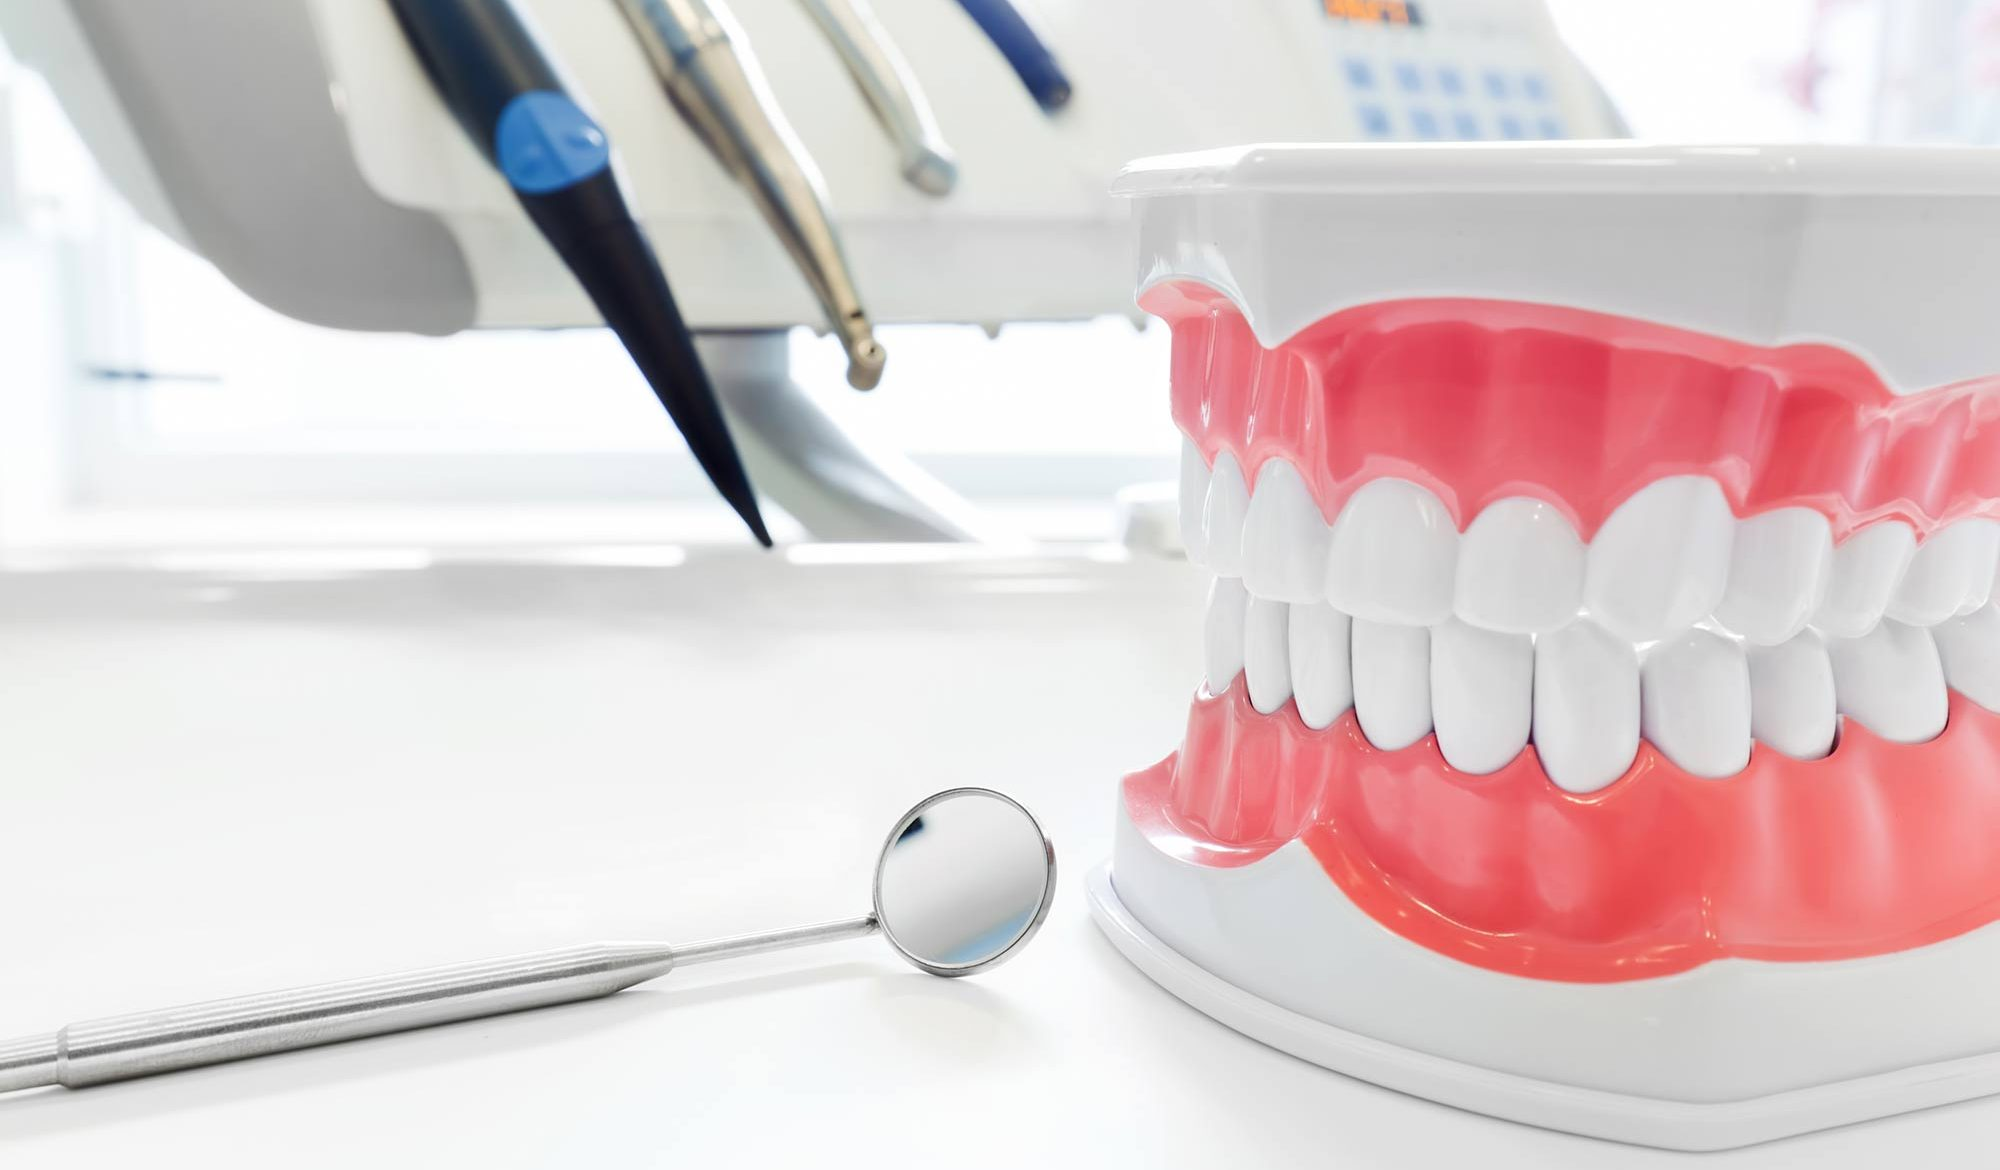 Dental hygienist Christina Chatfield has kicked off a campaign to shine light on the current concerns and issues faced by dentistry.